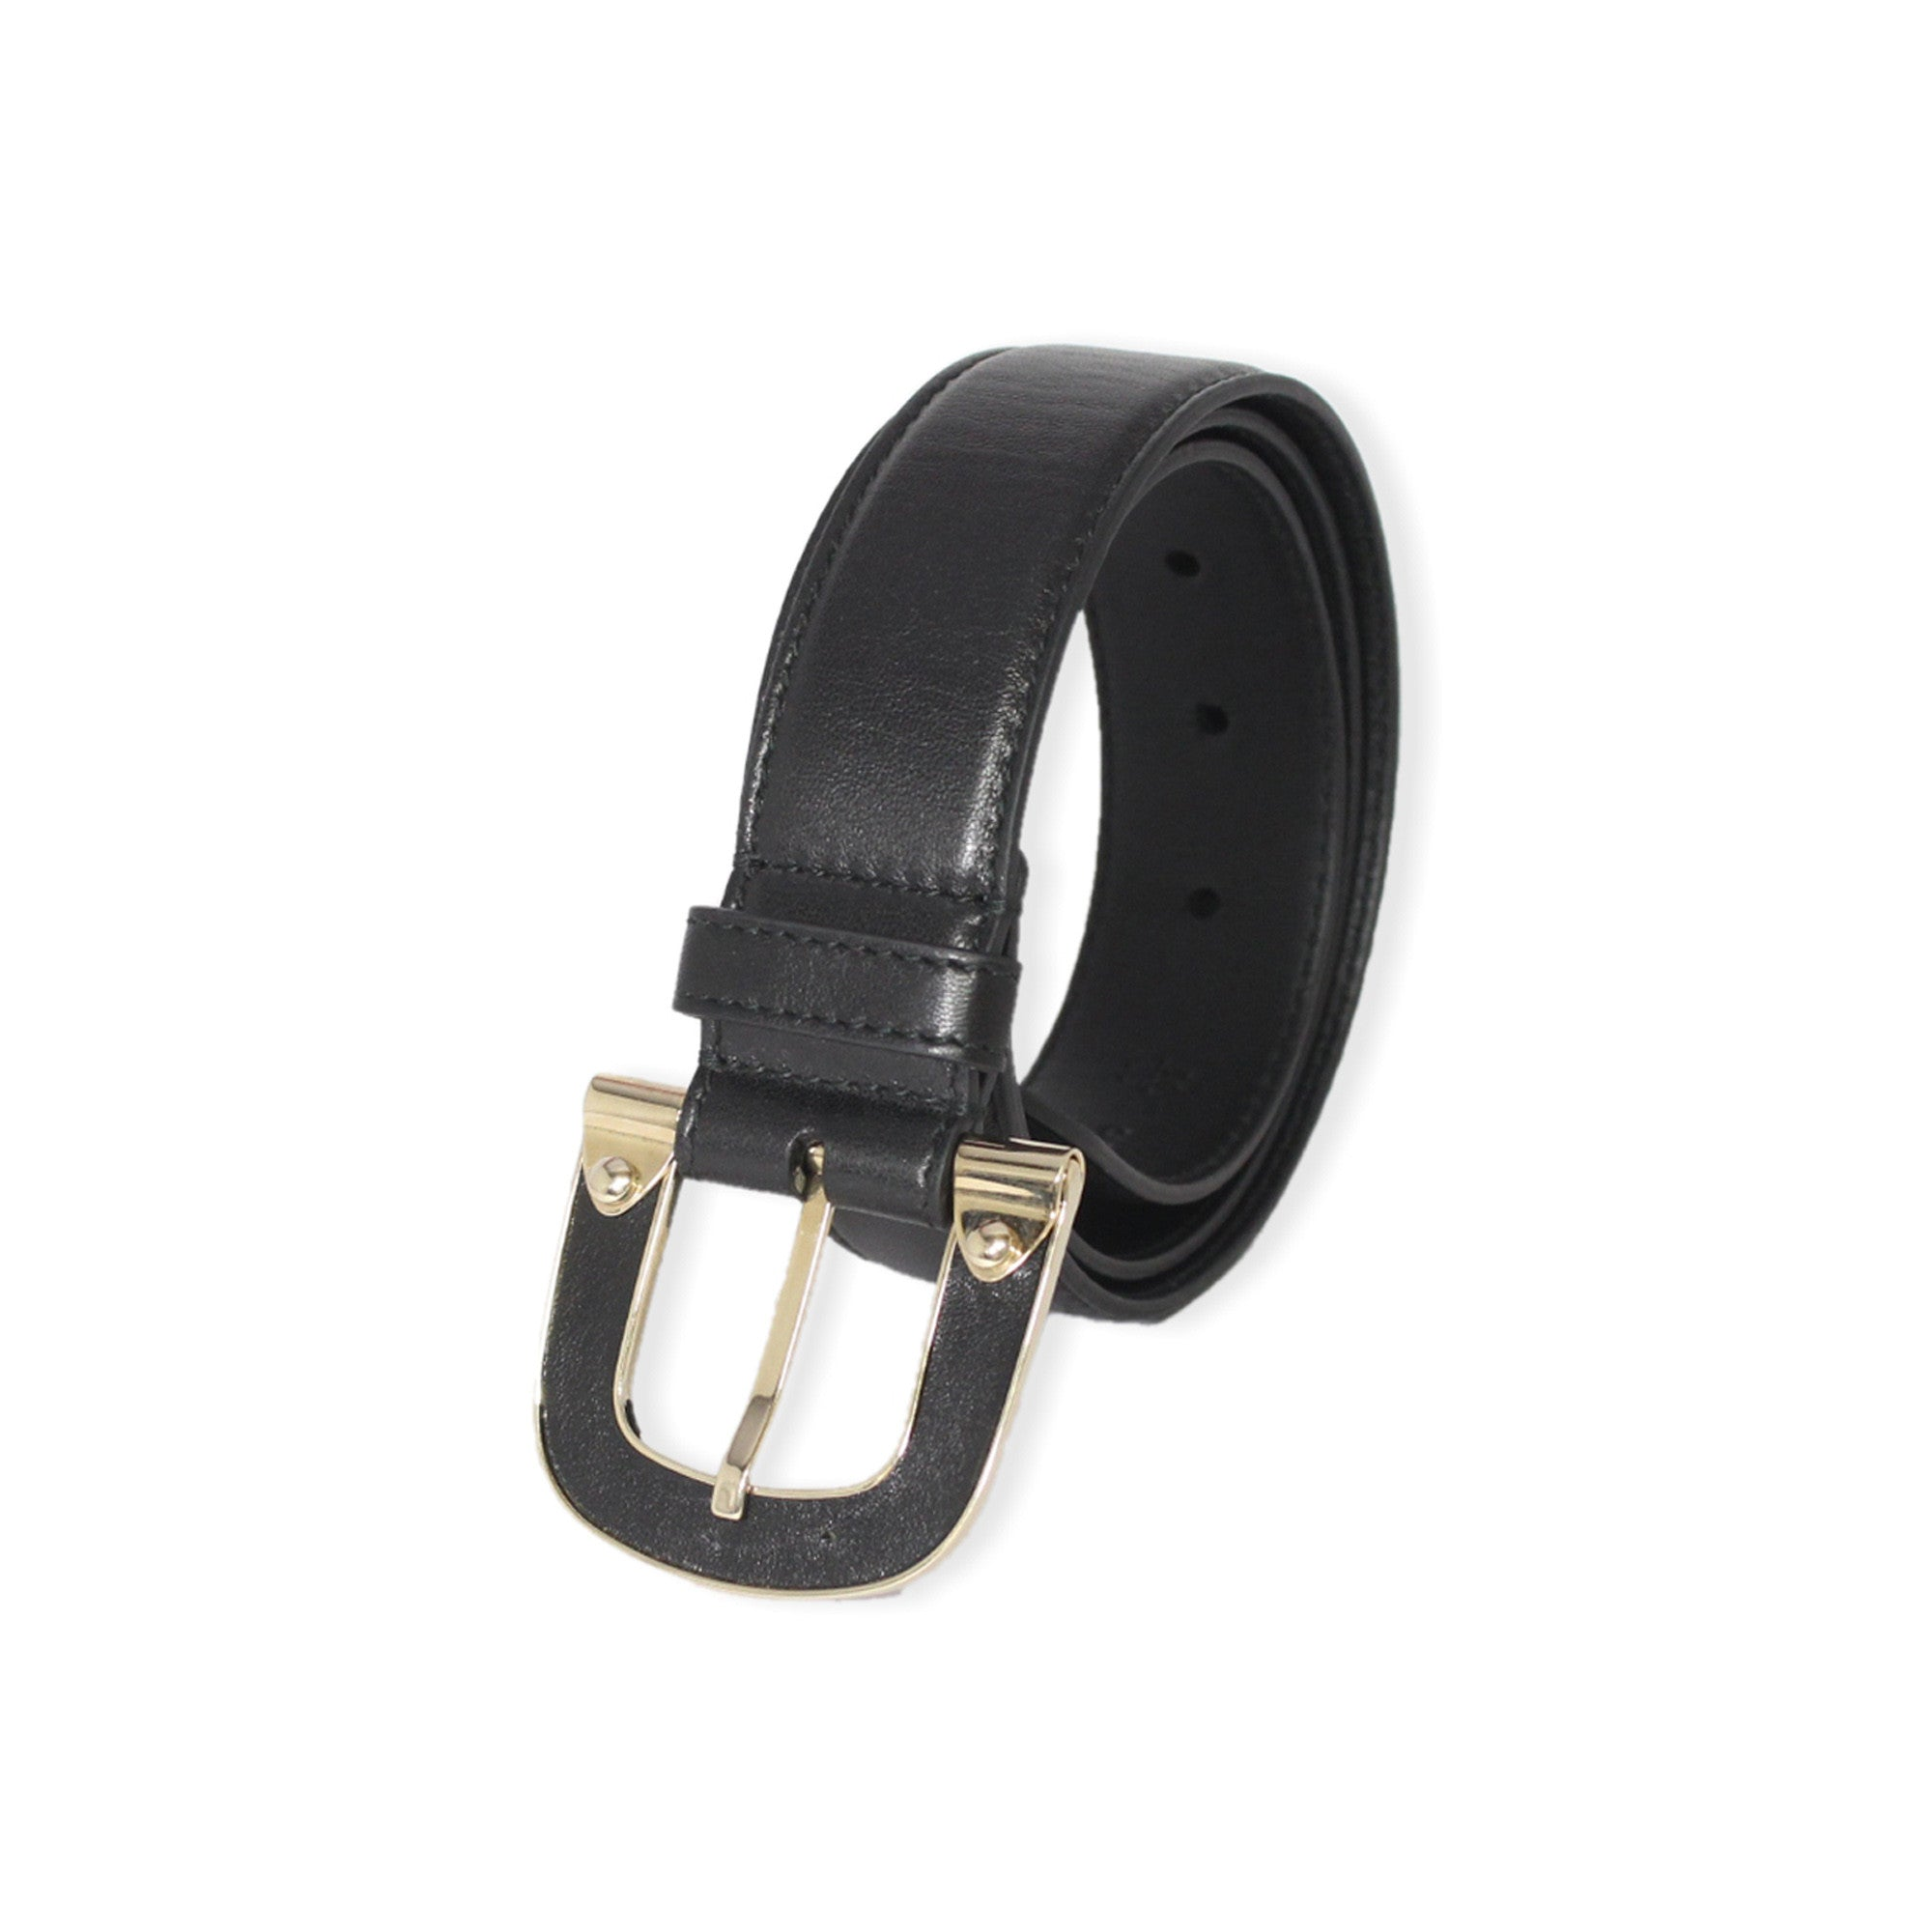 Bally Cacao Calfskin Nappa Leather Adjustable Women's Belt